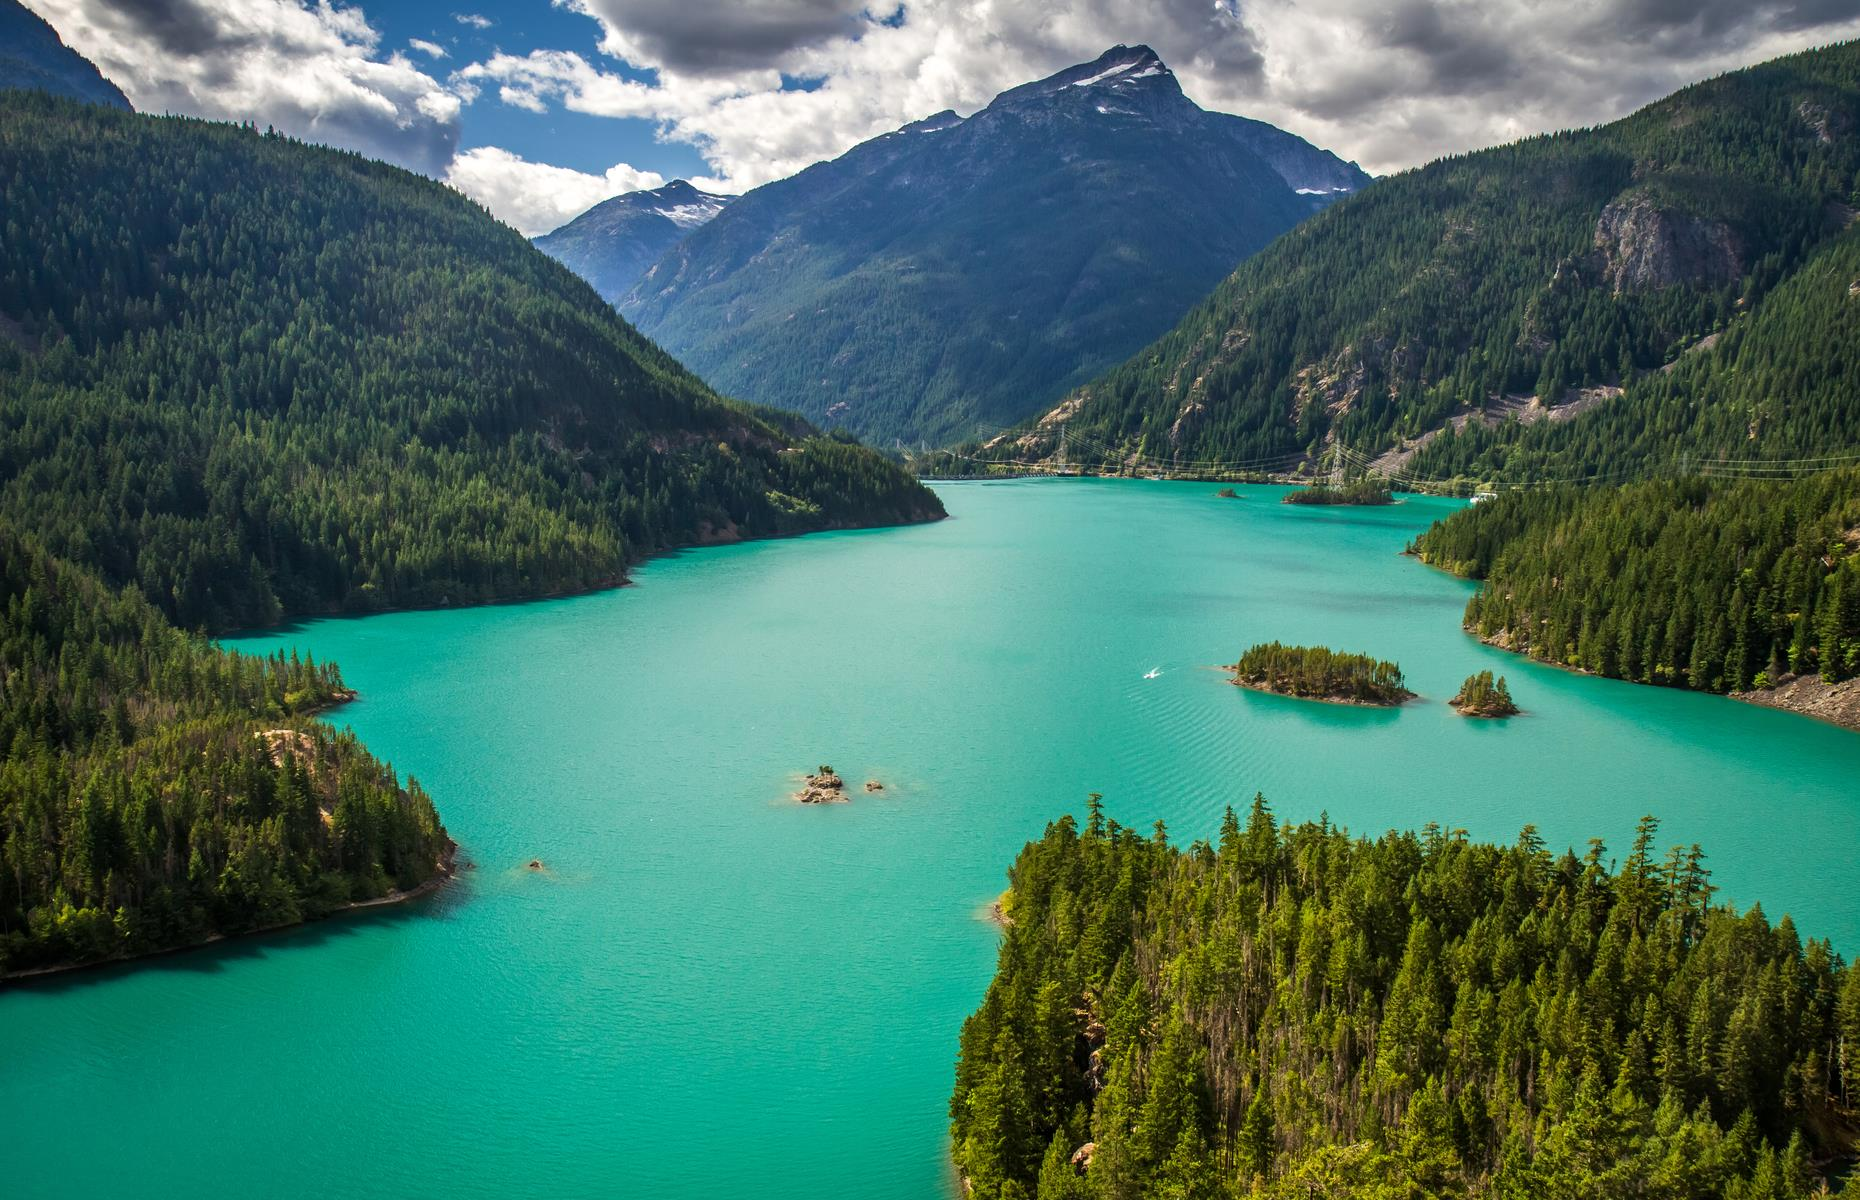 Slide 16 of 32: The beauty of North Cascades National Park is undeniable. Glacier crowns top mountain peaks, forested trails lead to tall waterfalls and lakes are the color of creamy turquoise. The park is home to grizzly bears, gray wolves and more than 200 species of bird.